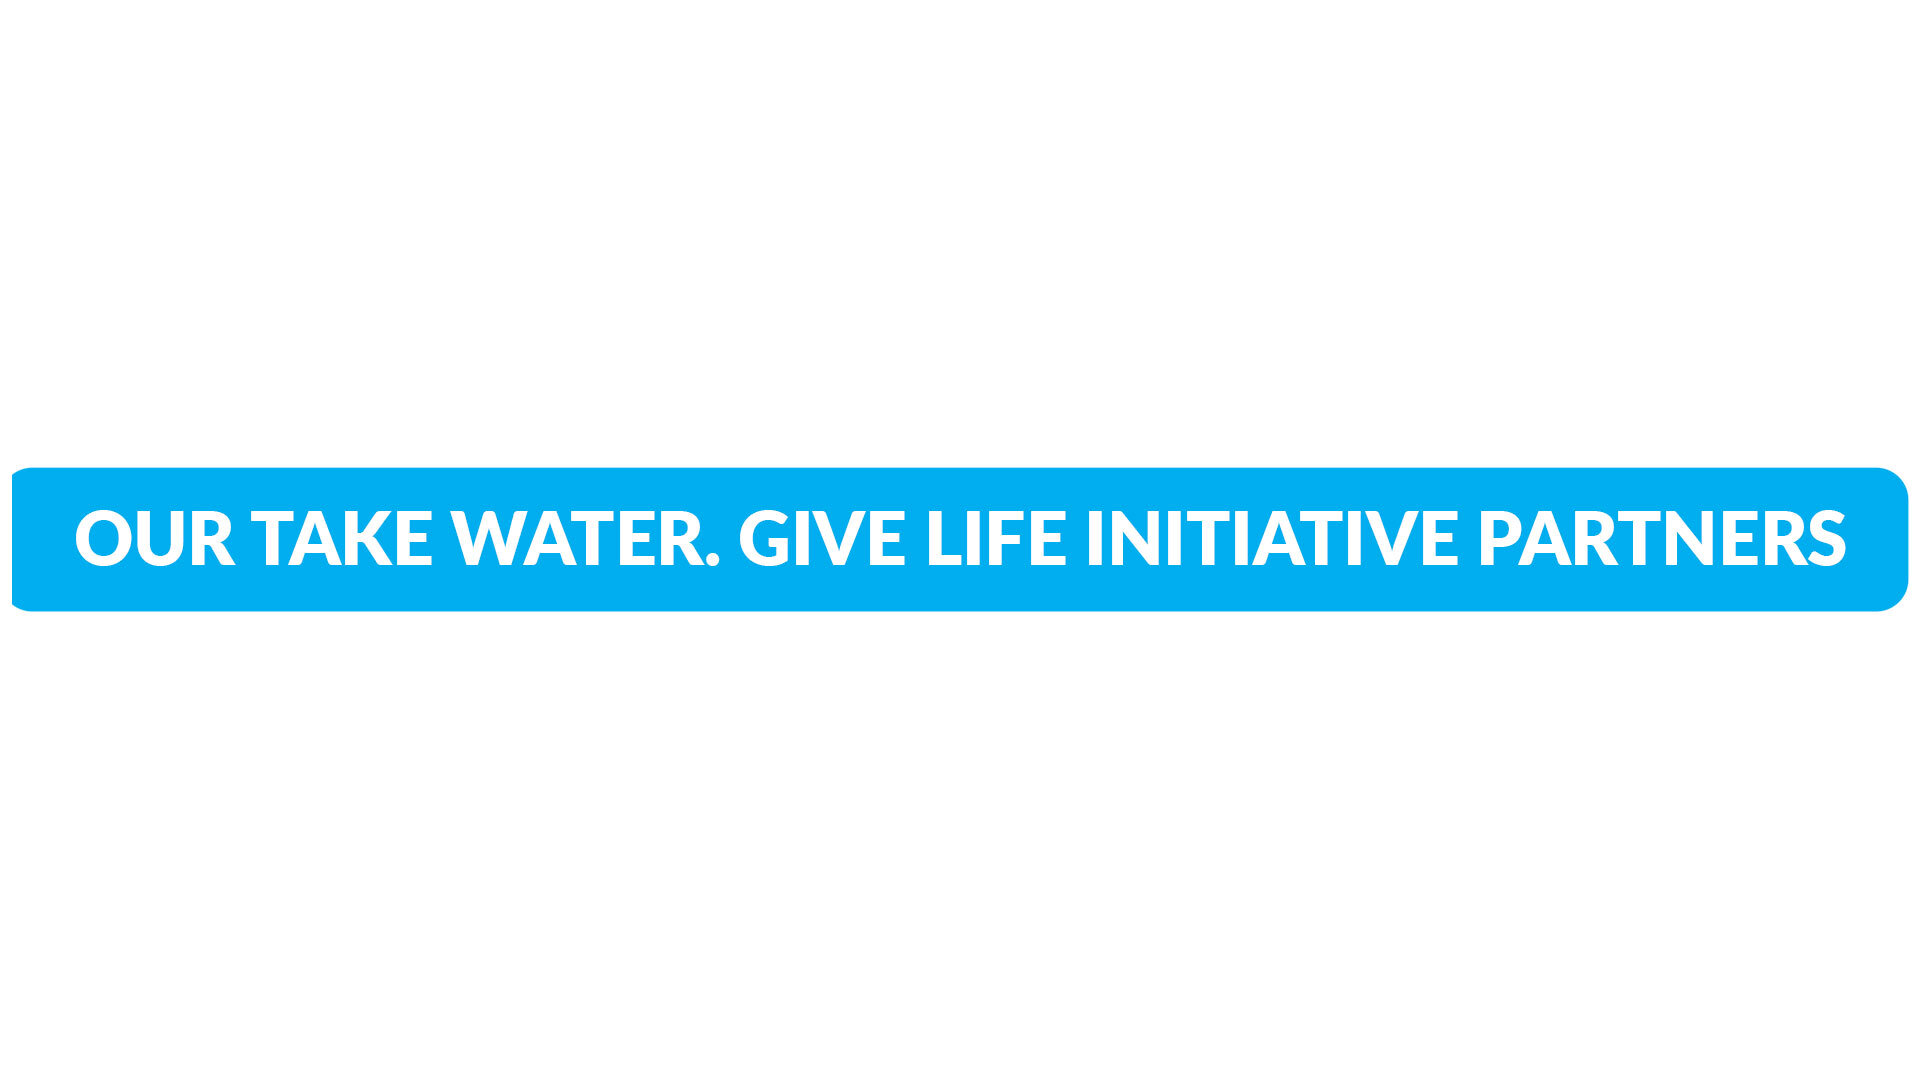 Our-Take-water.Give-Life.jpg